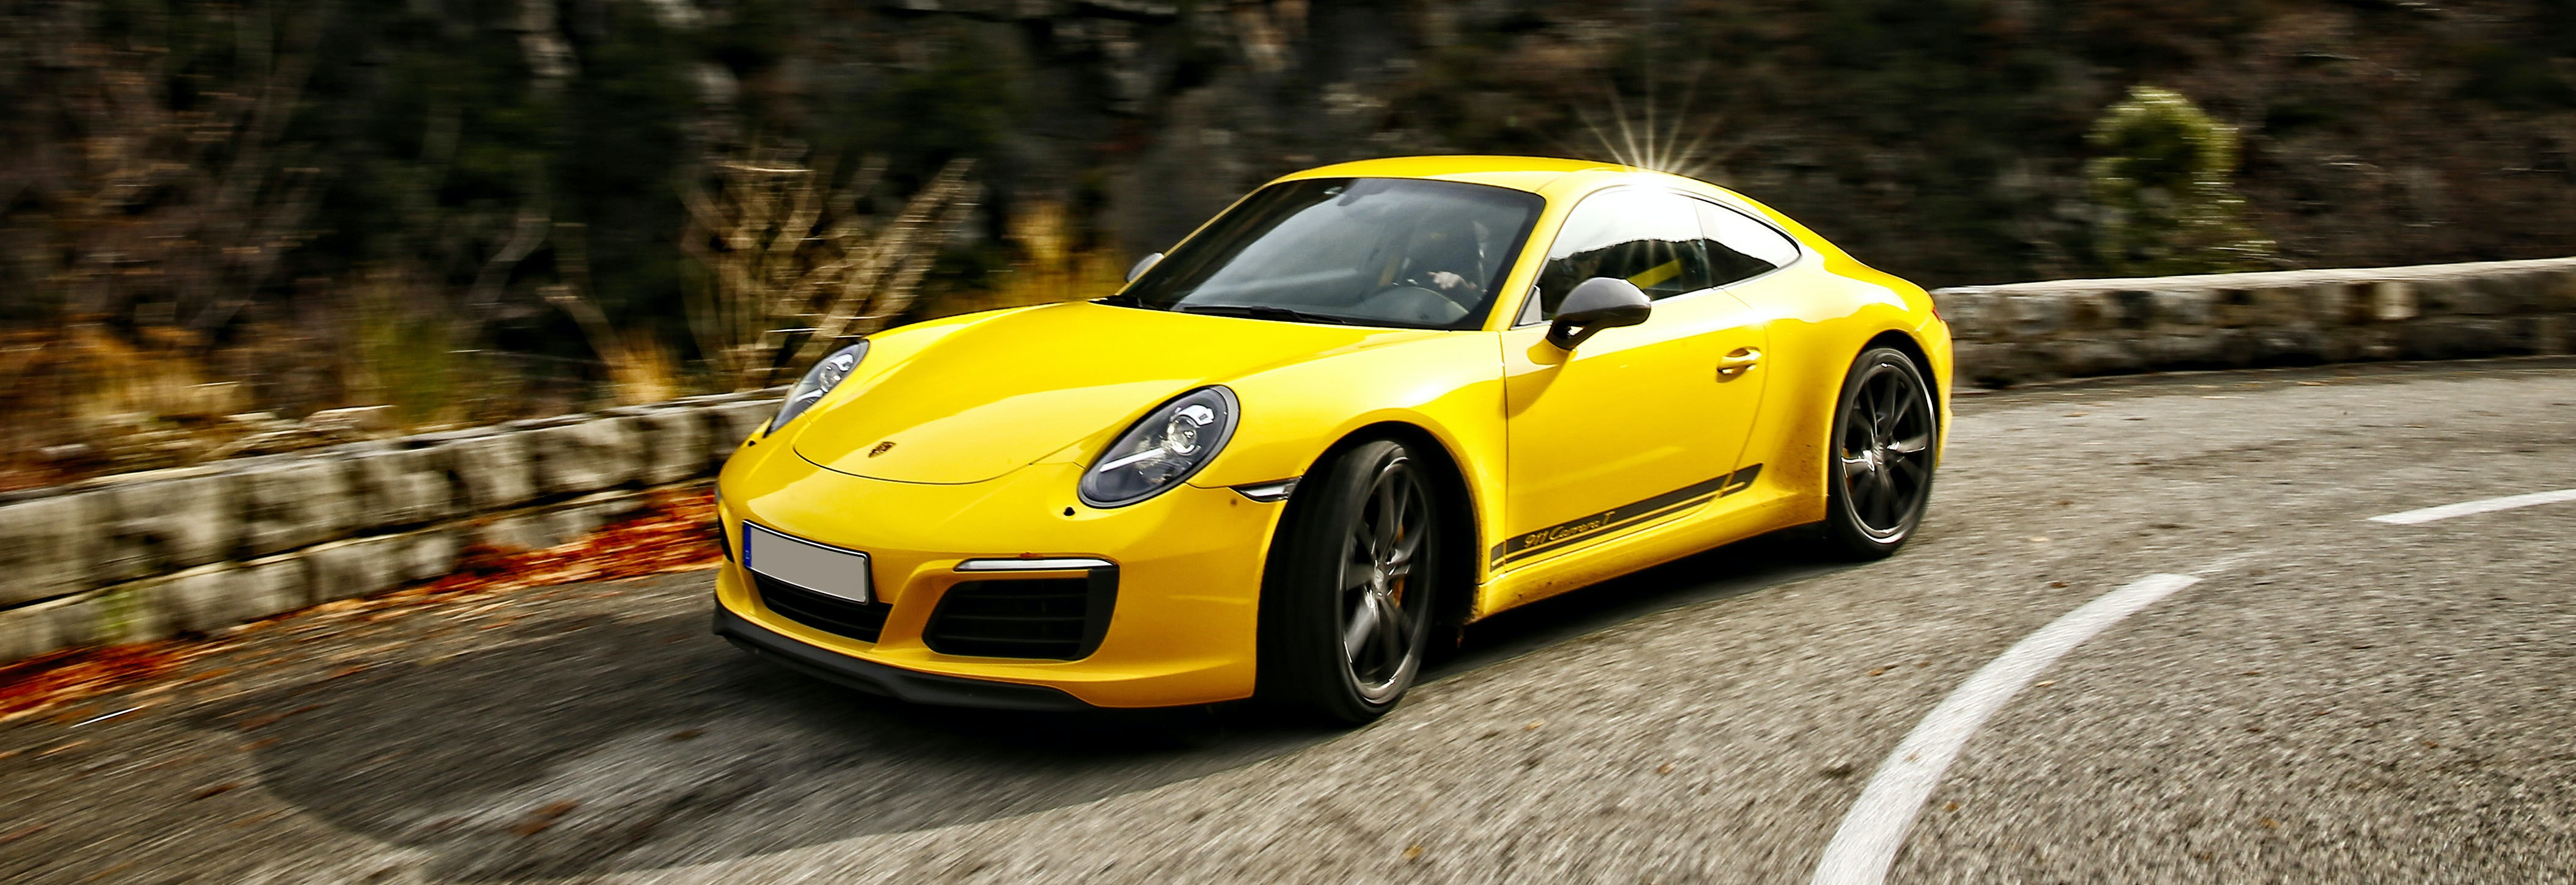 2018 Porsche 911 Carrera T Yellow Driving Front